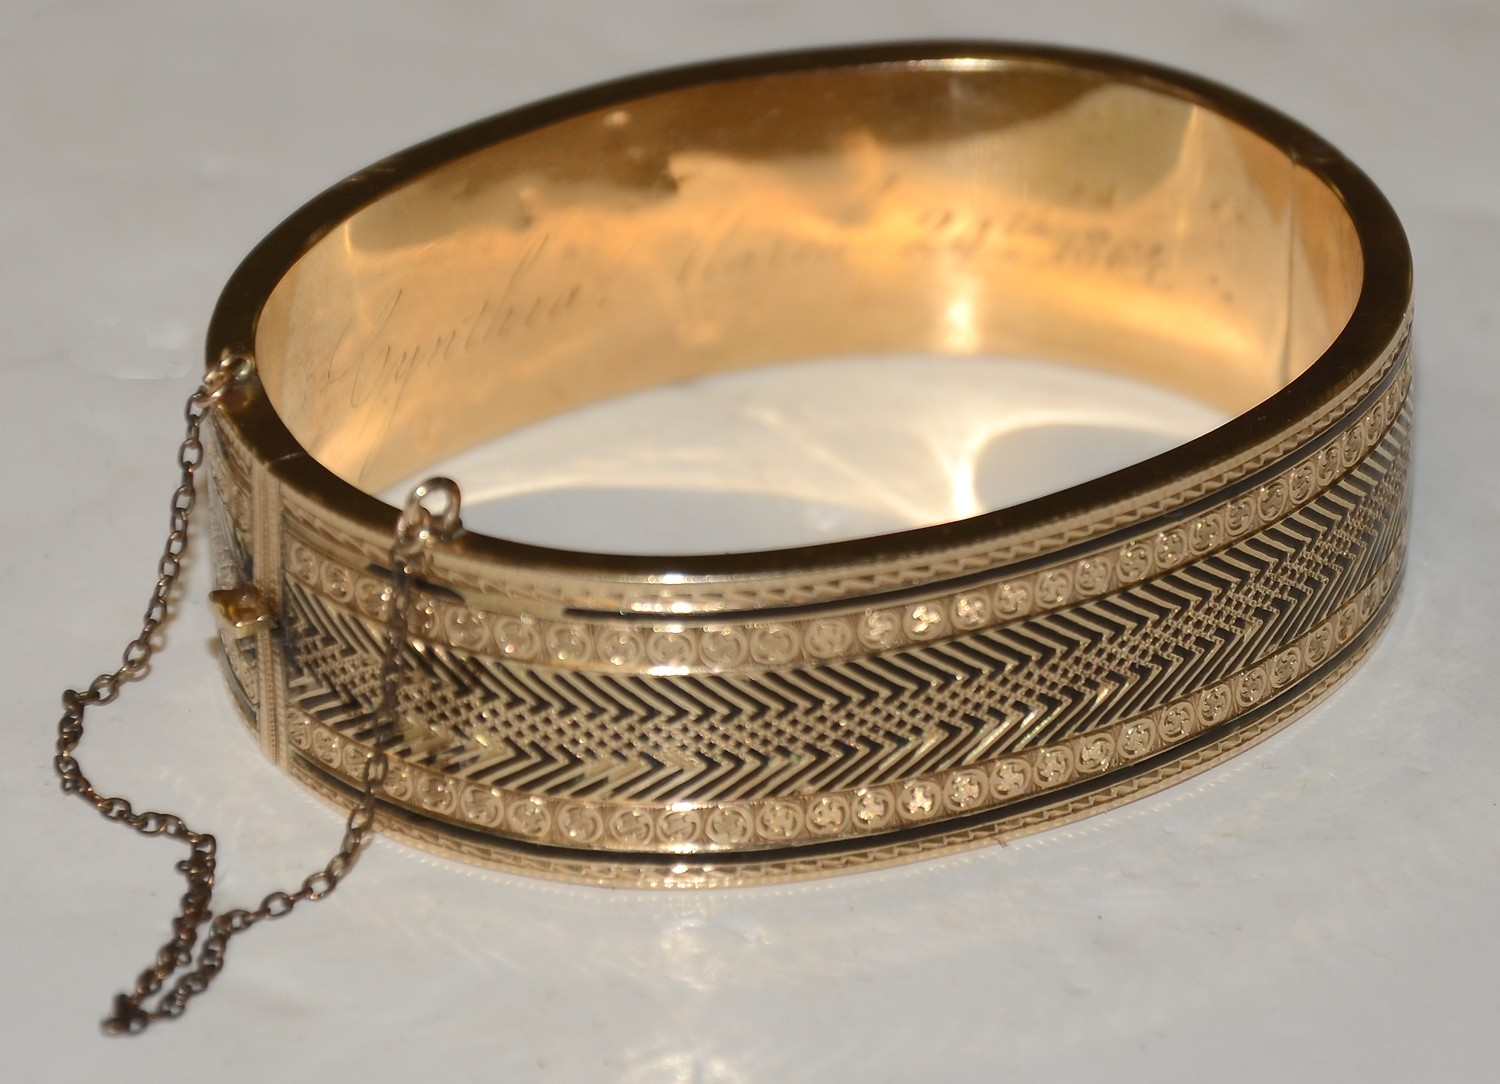 CIVIL WAR ERA LADIES GOLD BANGLE BRACELET WITH ENGRAVED INSCRIPTION